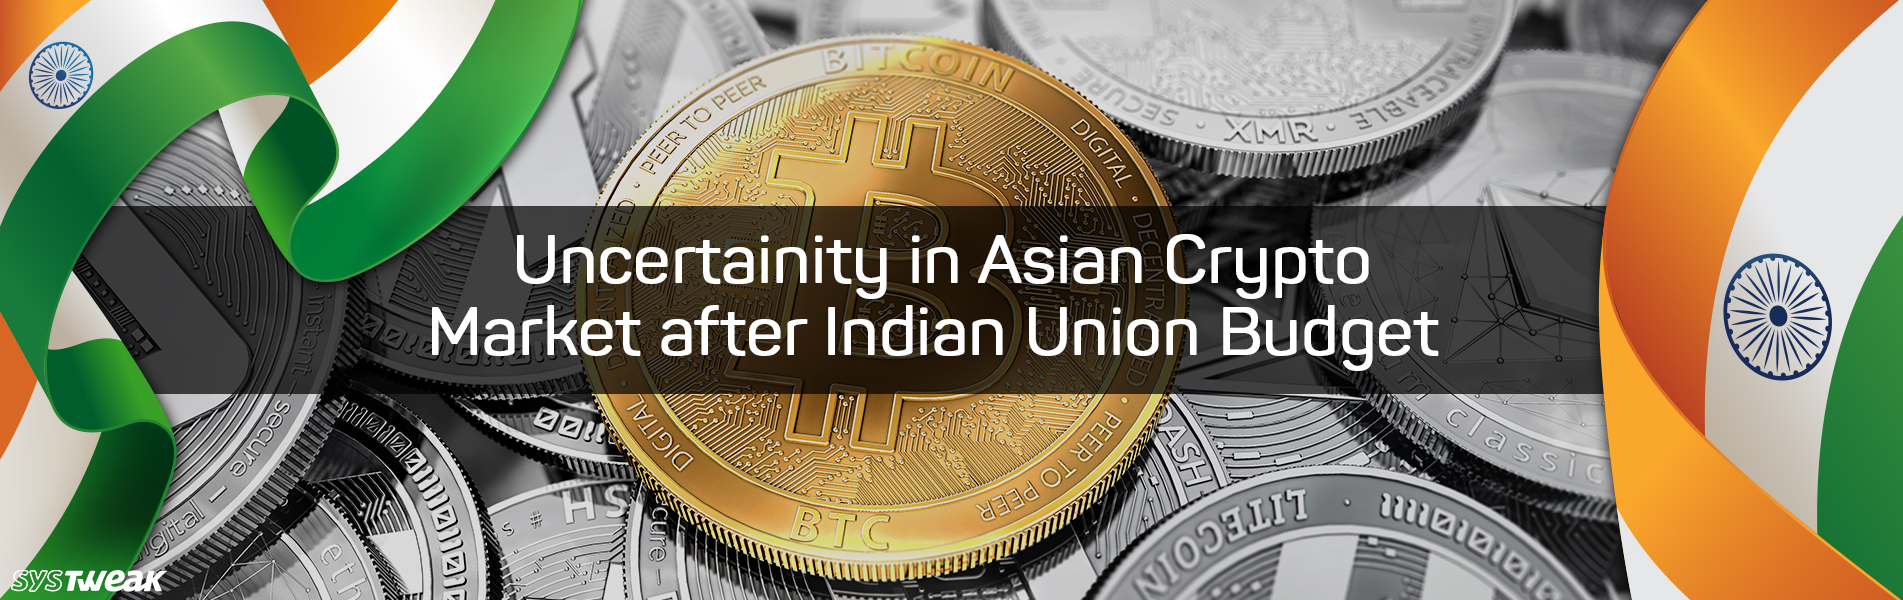 Indian Union Budget Almost Kills Asian Crypto Market